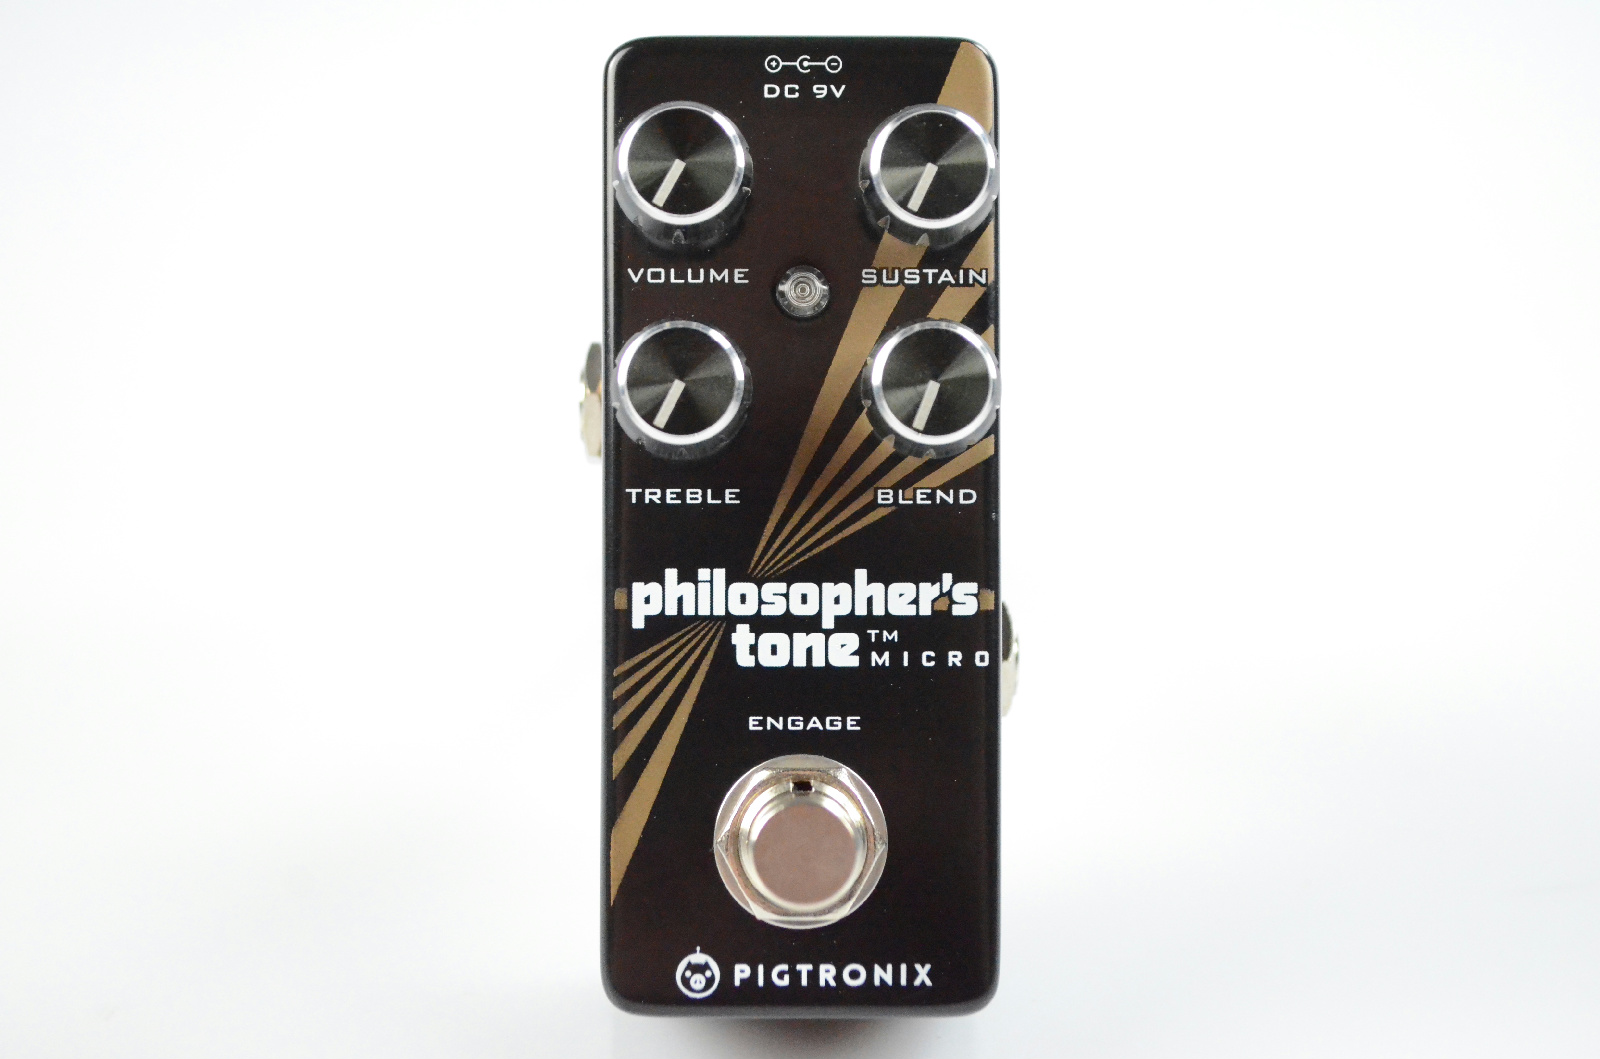 Pigtronix Philosopher's Tone Micro Compressor Guitar Effect Pedal #33100